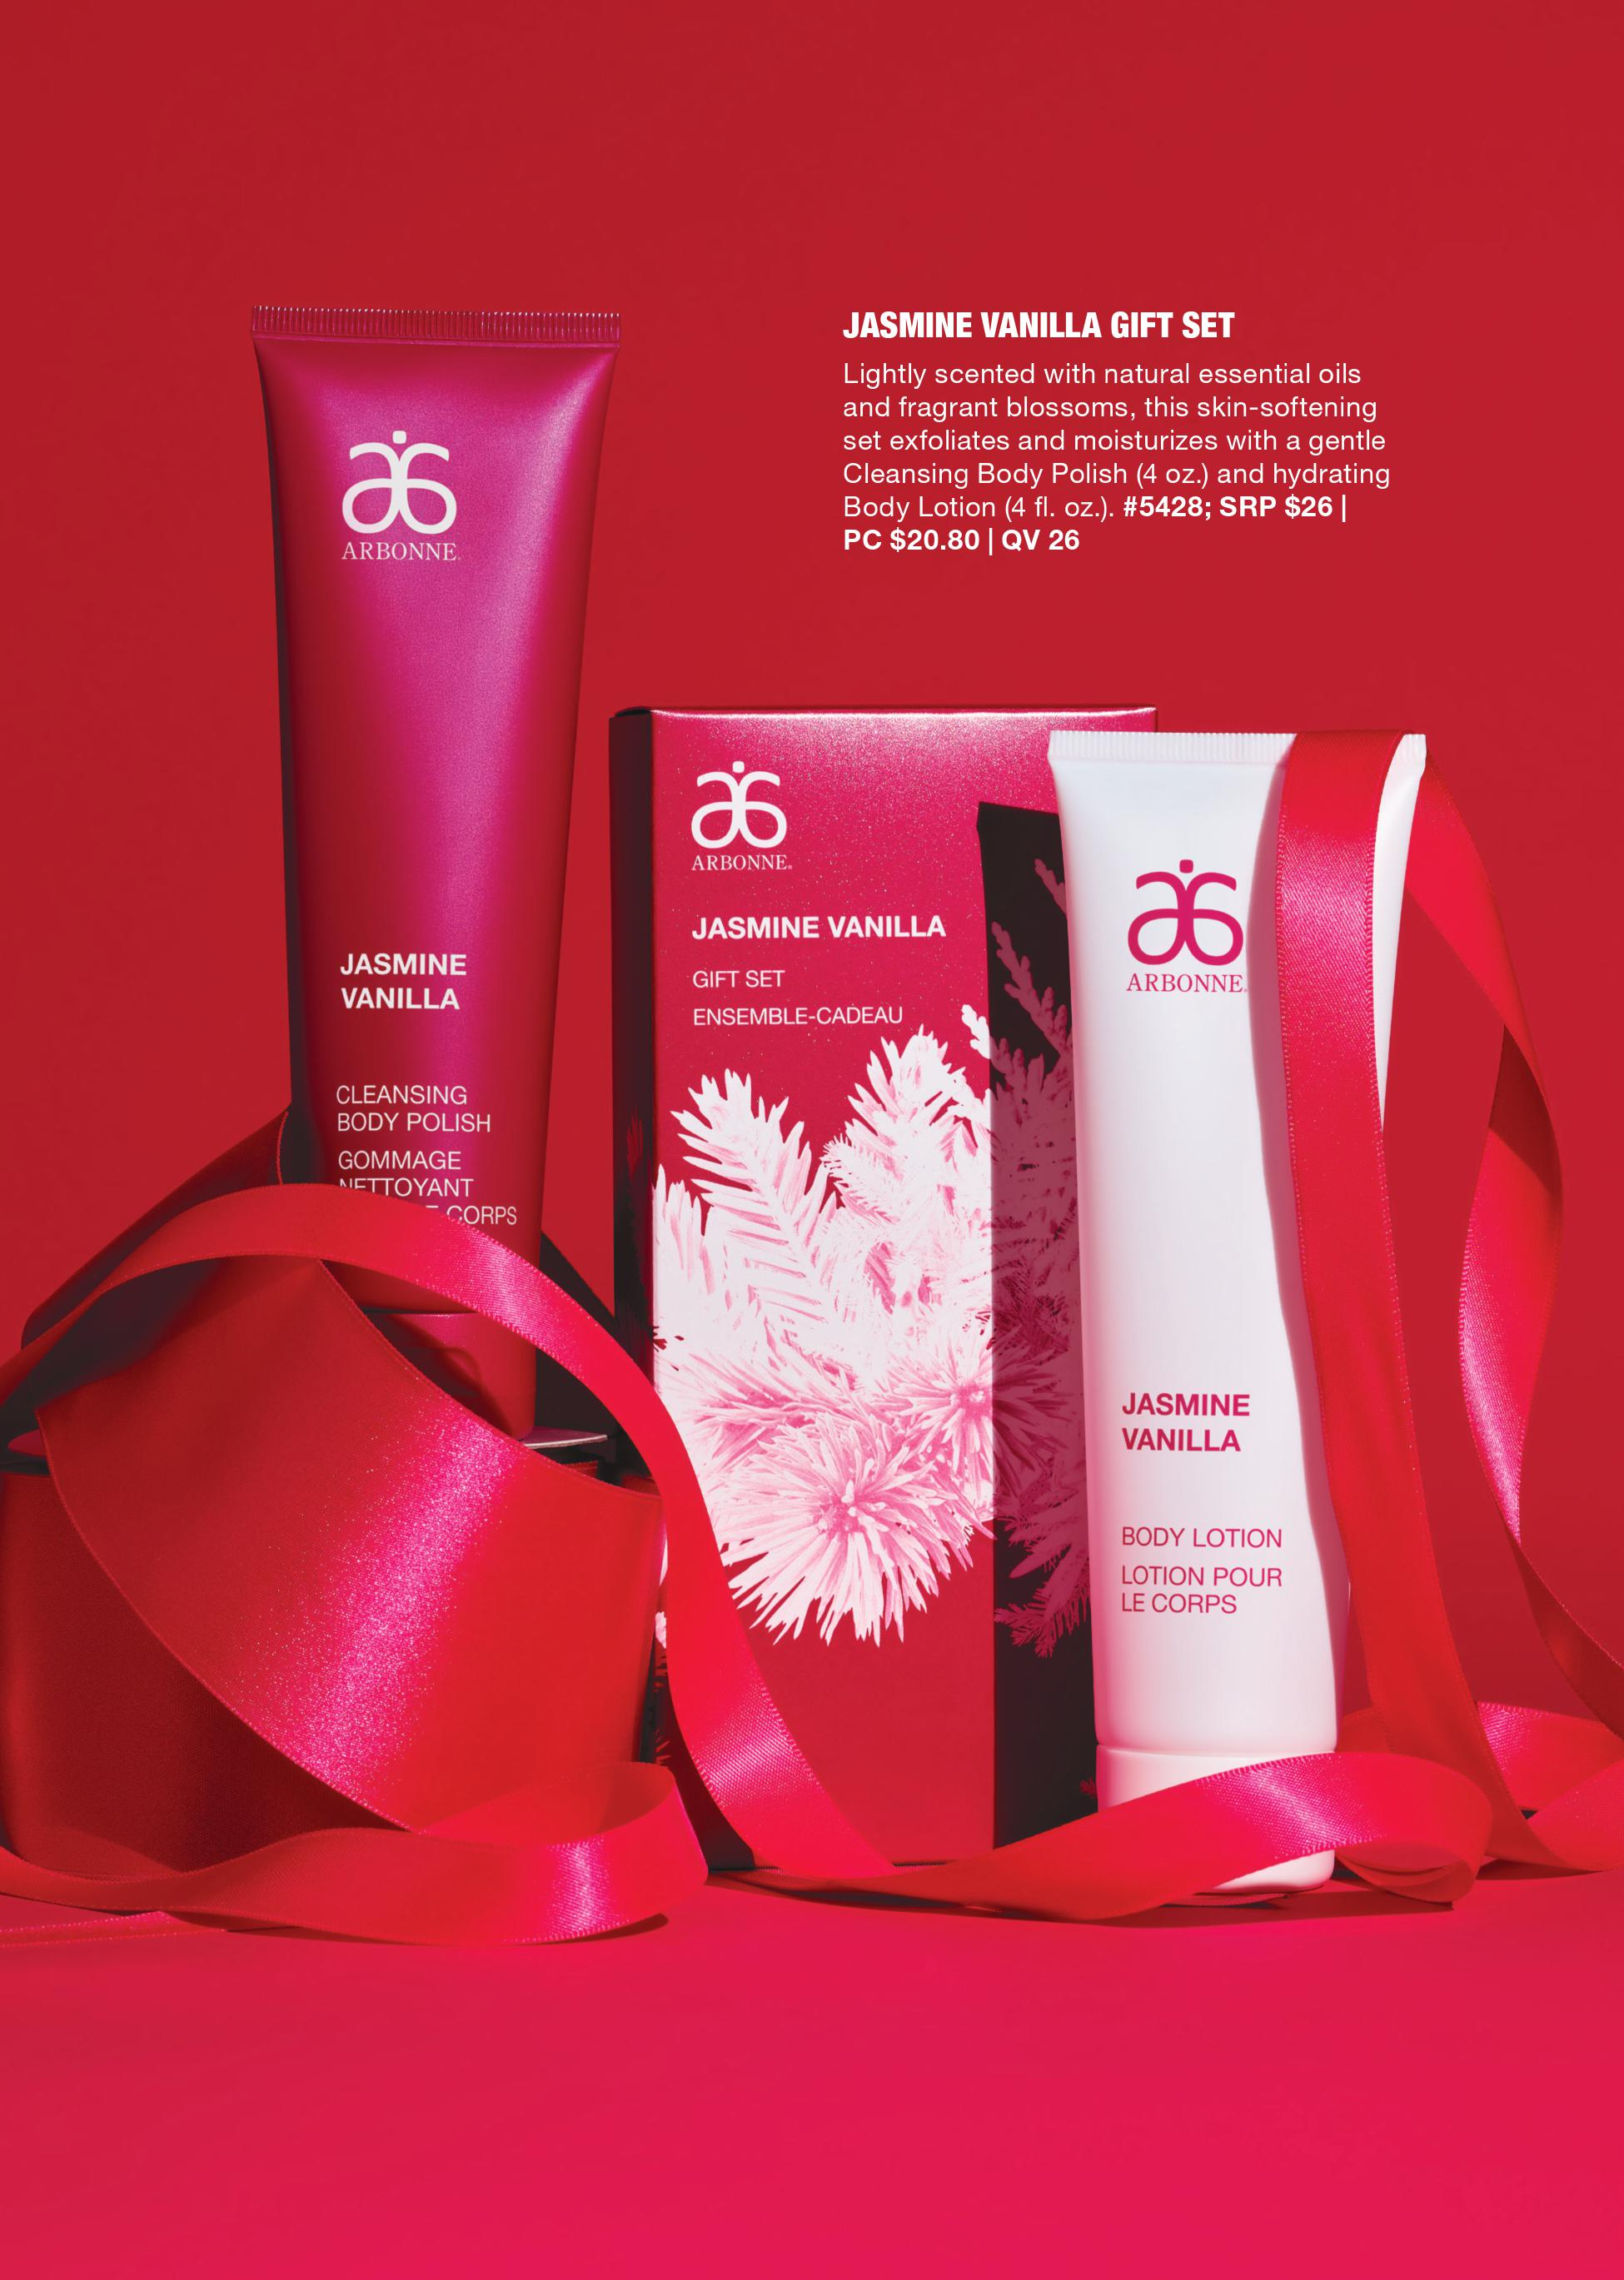 Arbonne Holiday Line 2019 I Want It All Set Revealed Smart Mom Blogger Work From Home Mom Lifestyle Blog